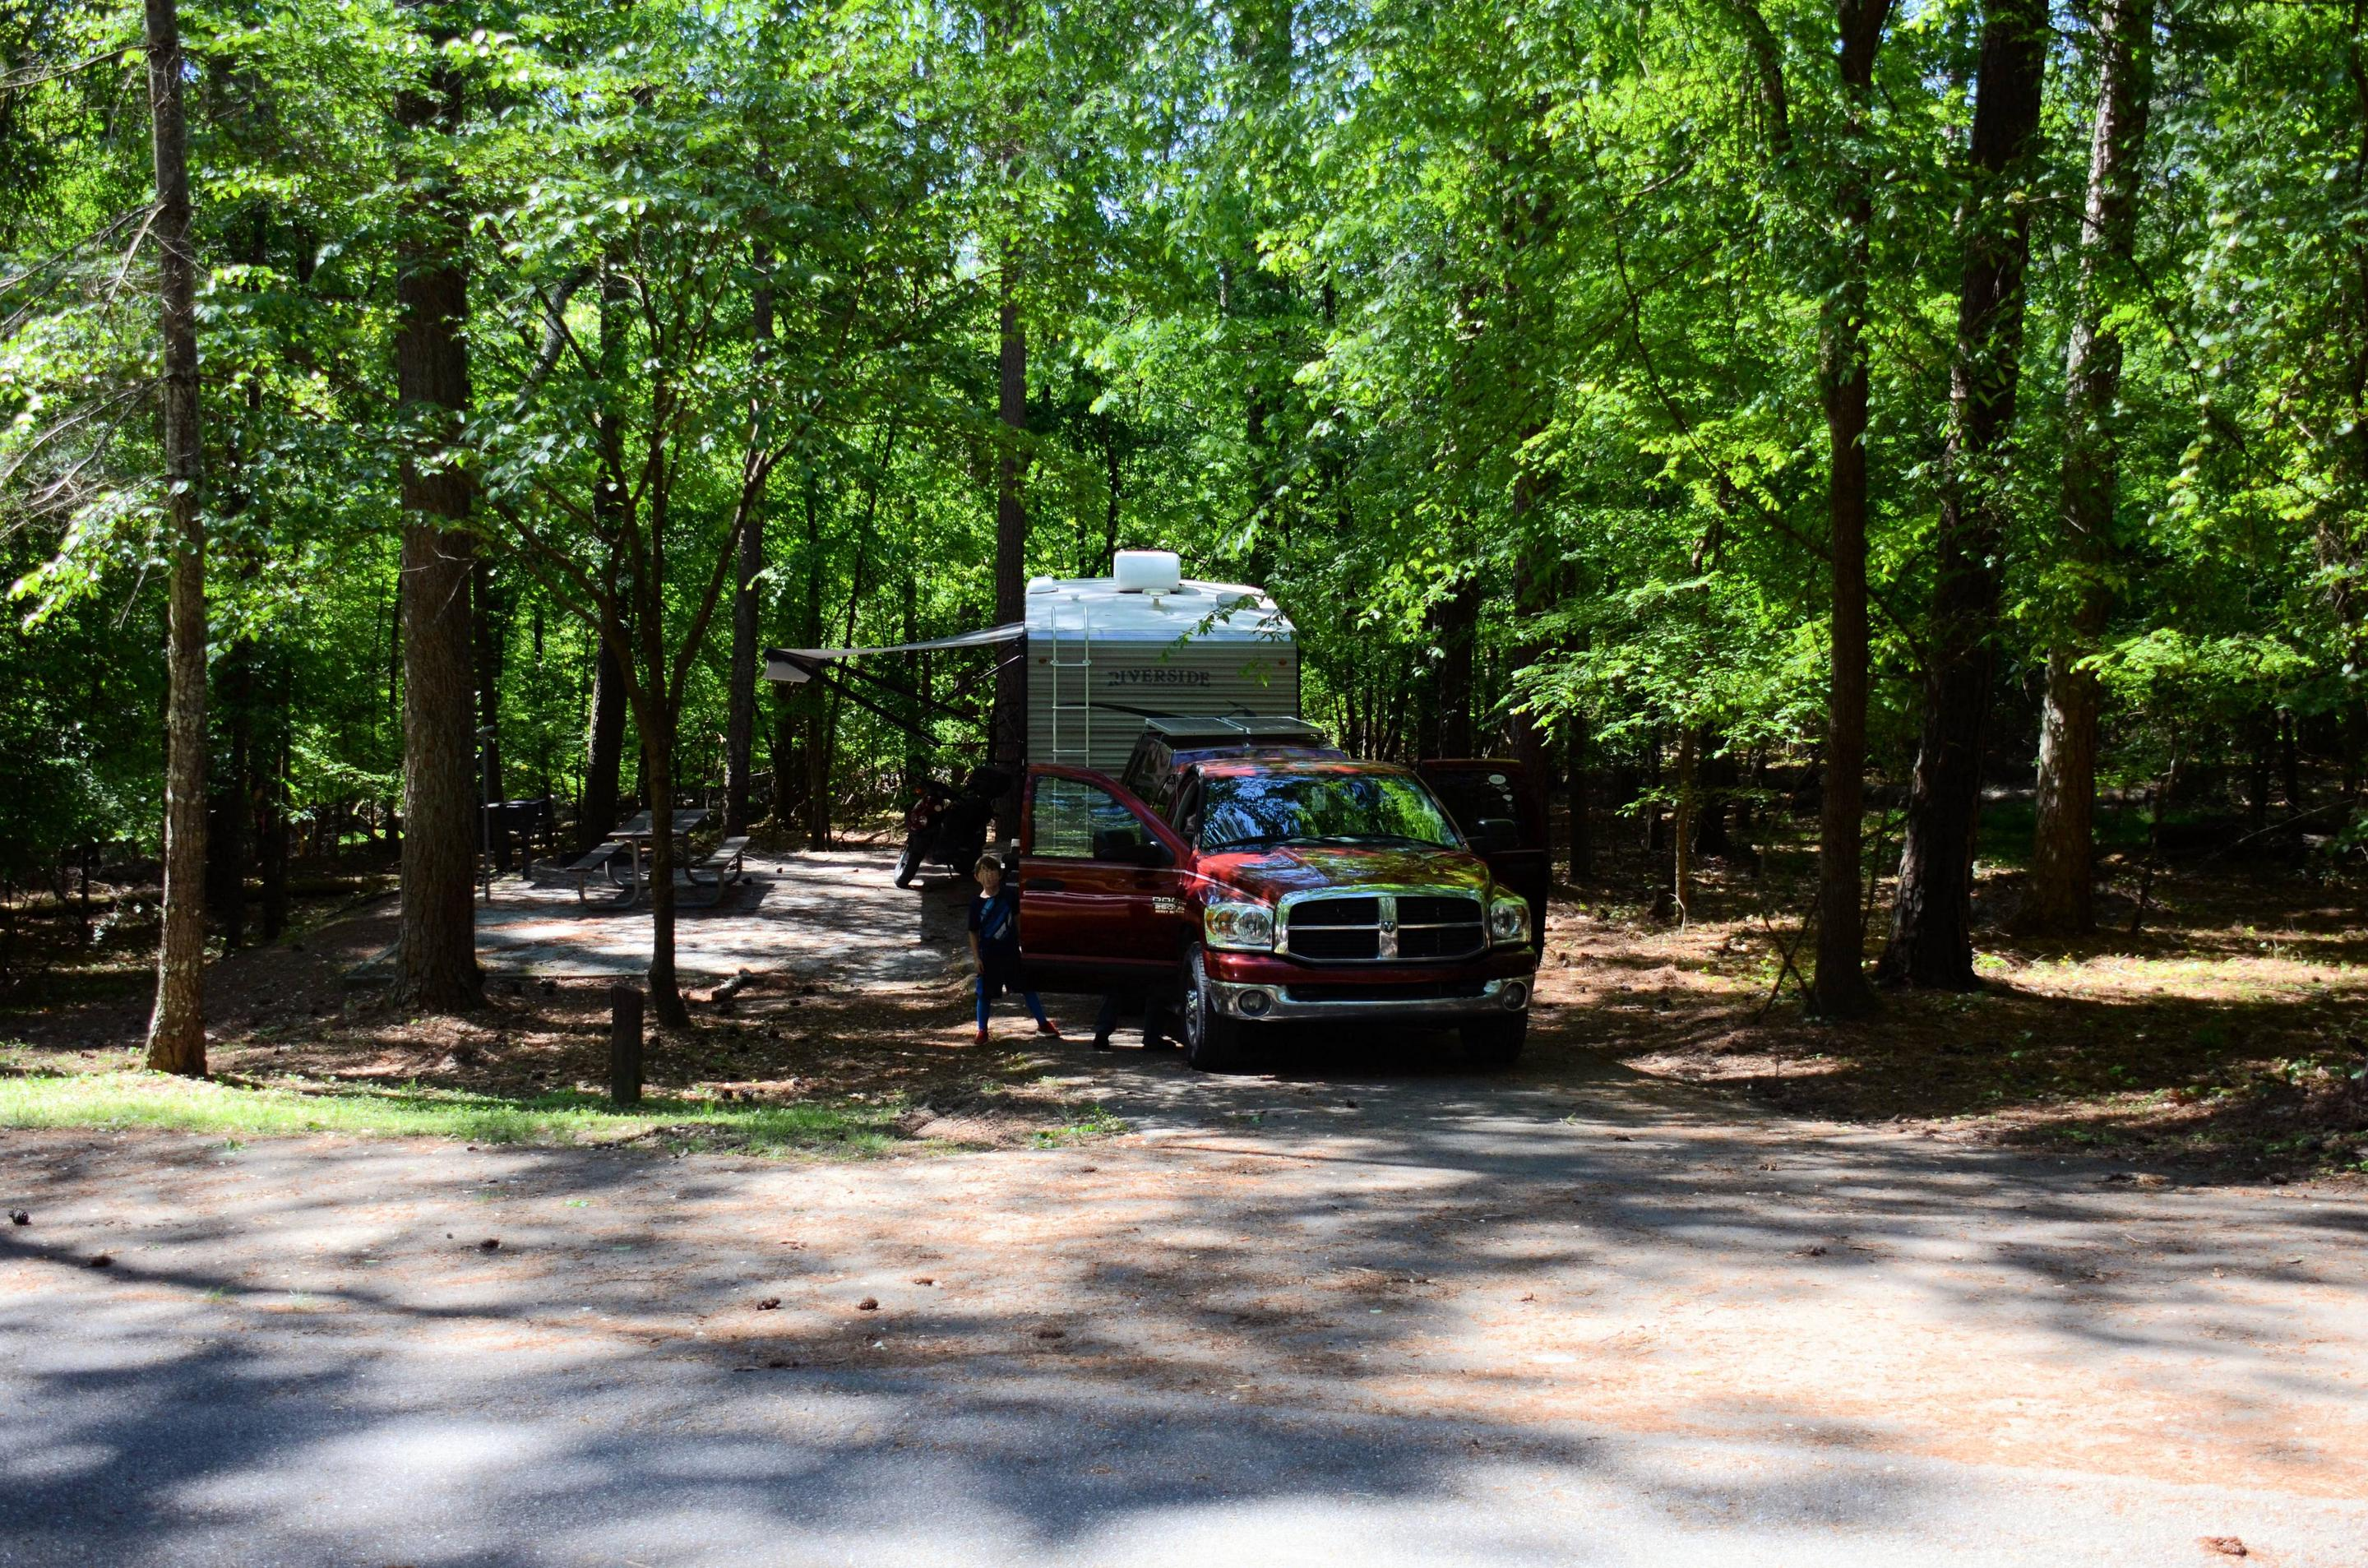 Driveway entrance/slope, awning-side clearance.McKinney Campground, campsite 60.